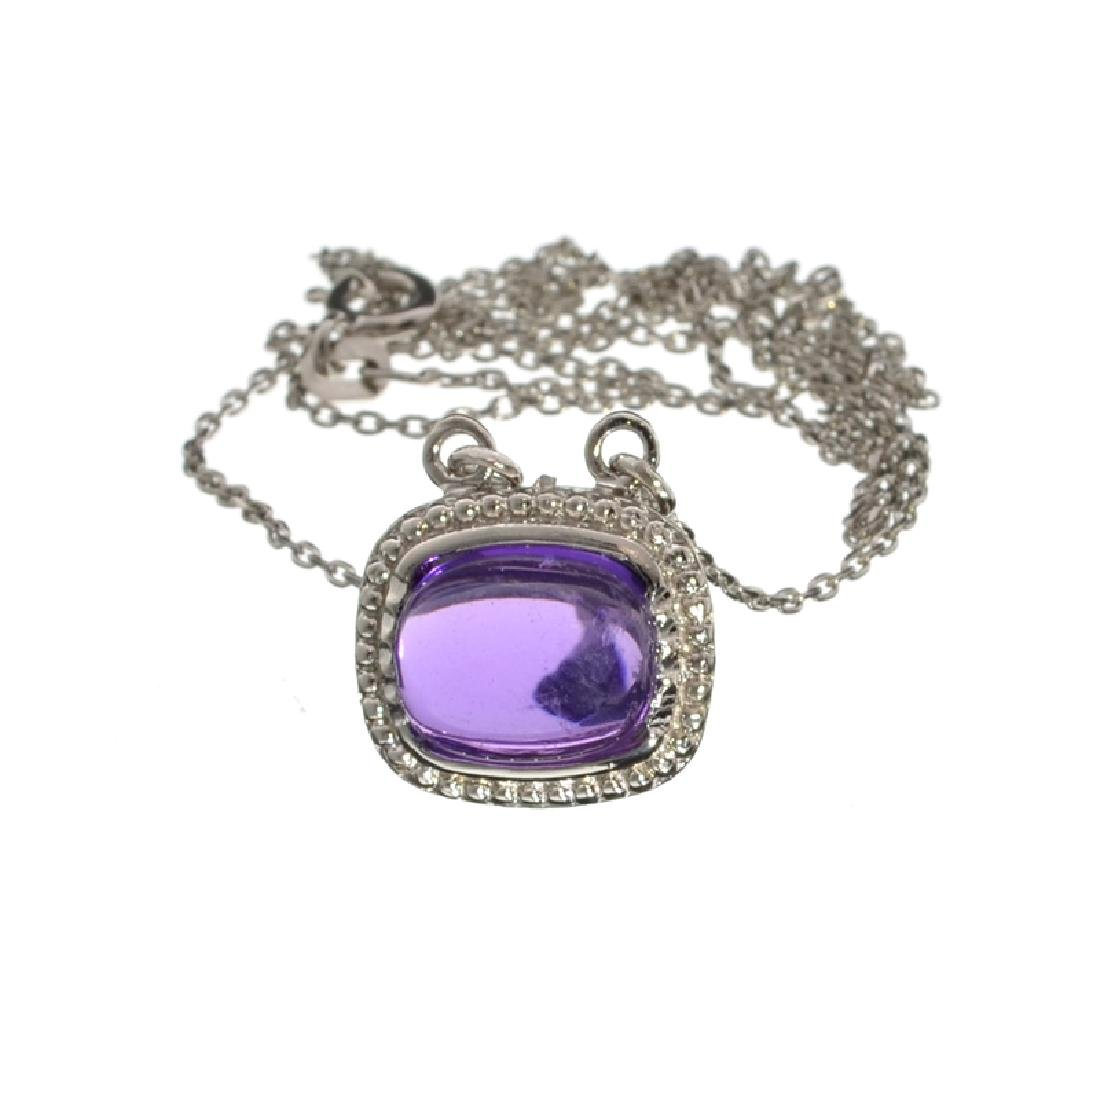 APP: 0.6k Fine Jewelry 3.91CT Cabochon Purple Amethyst